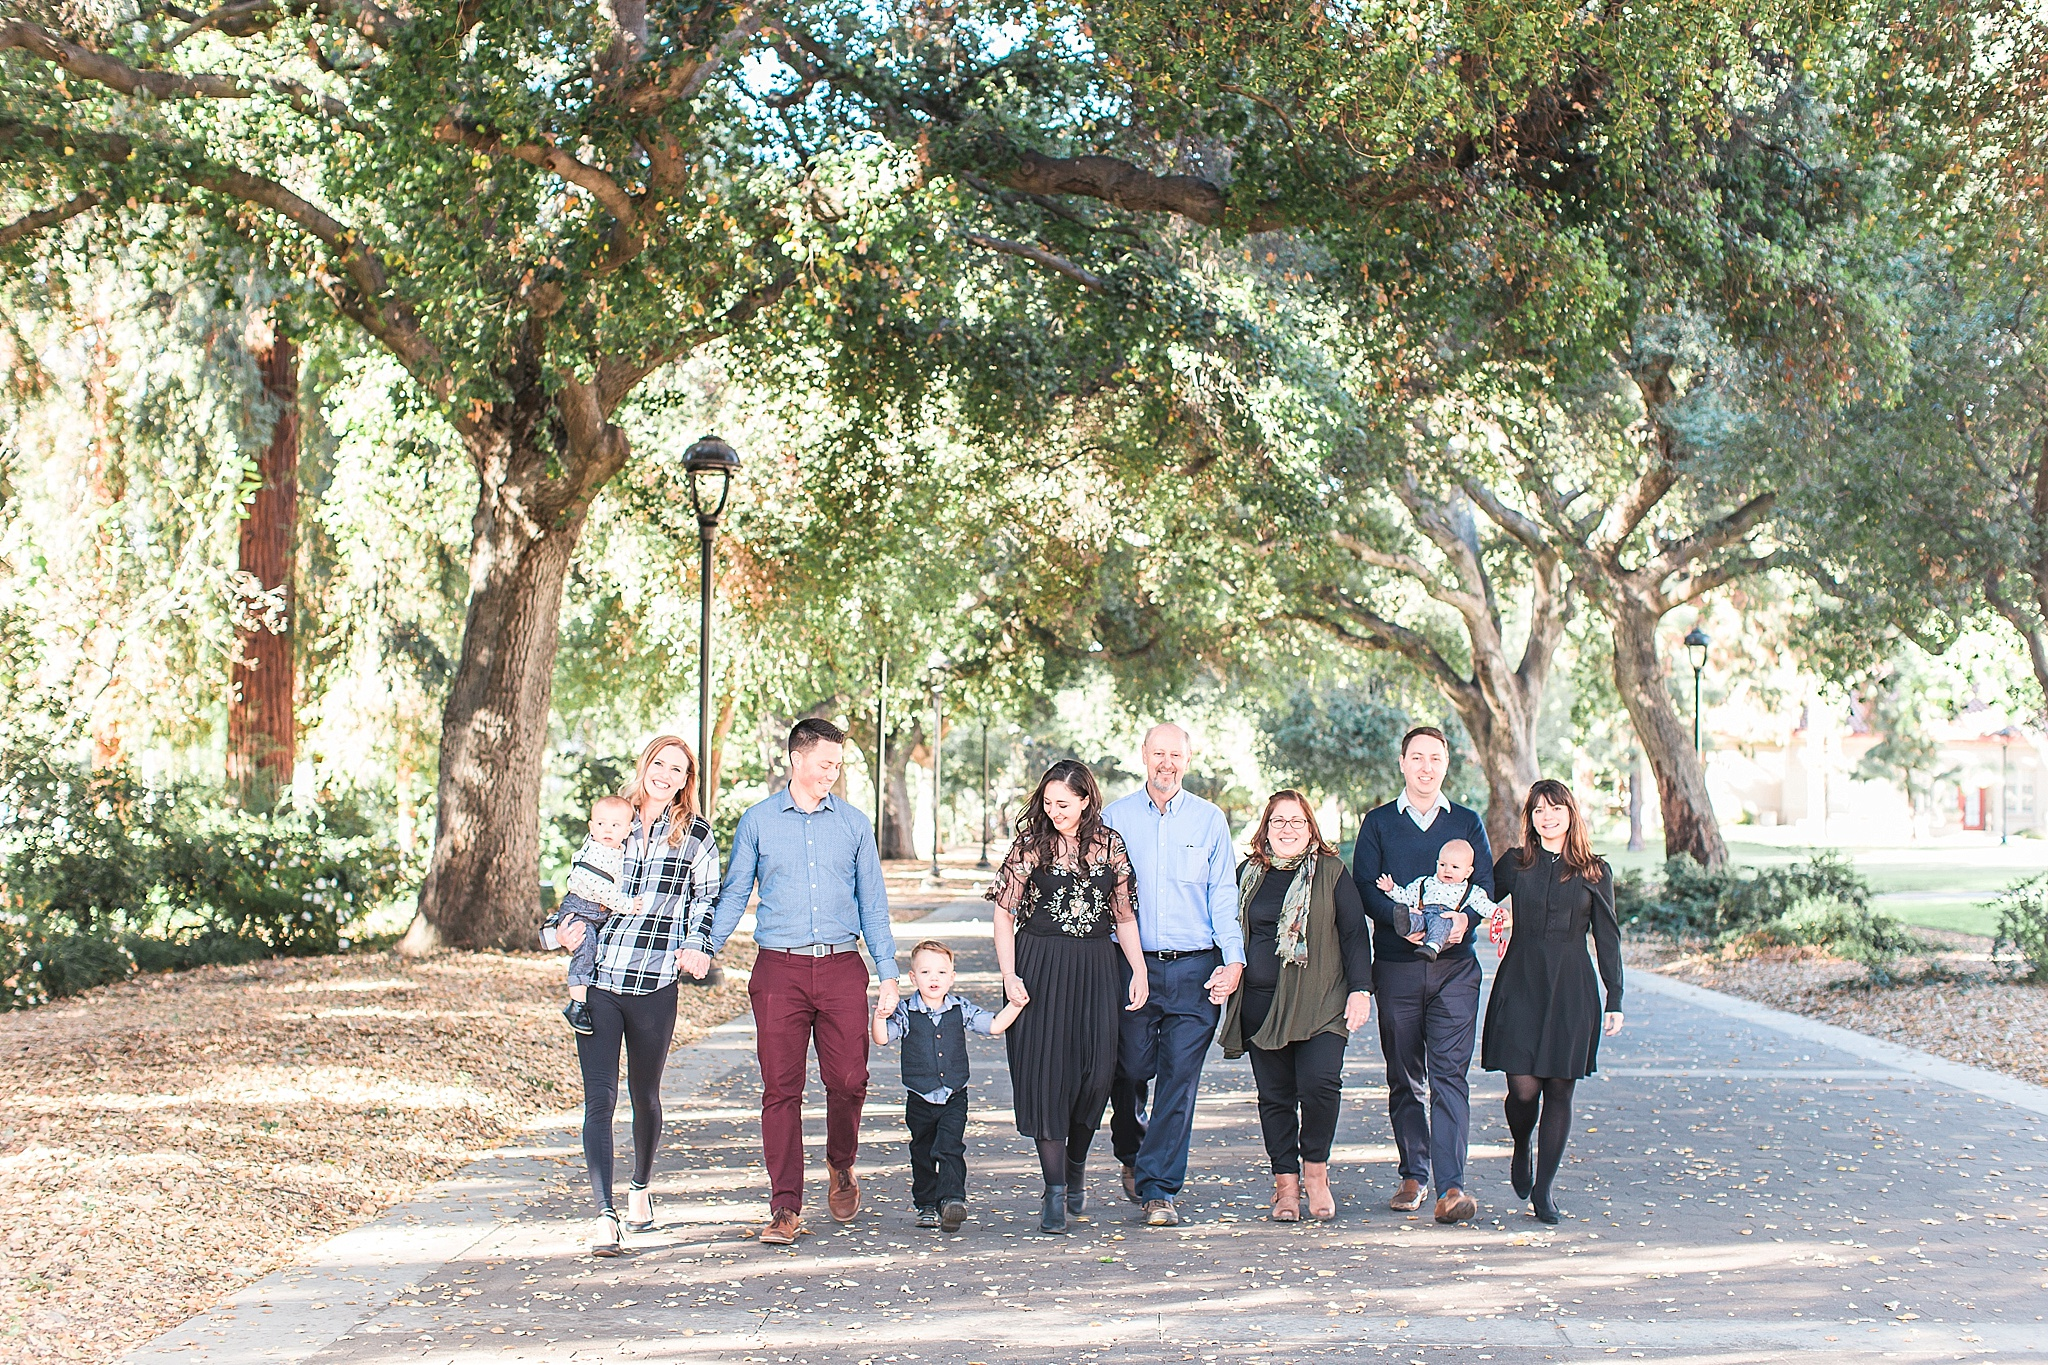 Claremont-Colleges-Family-Photos-18_WEB.jpg